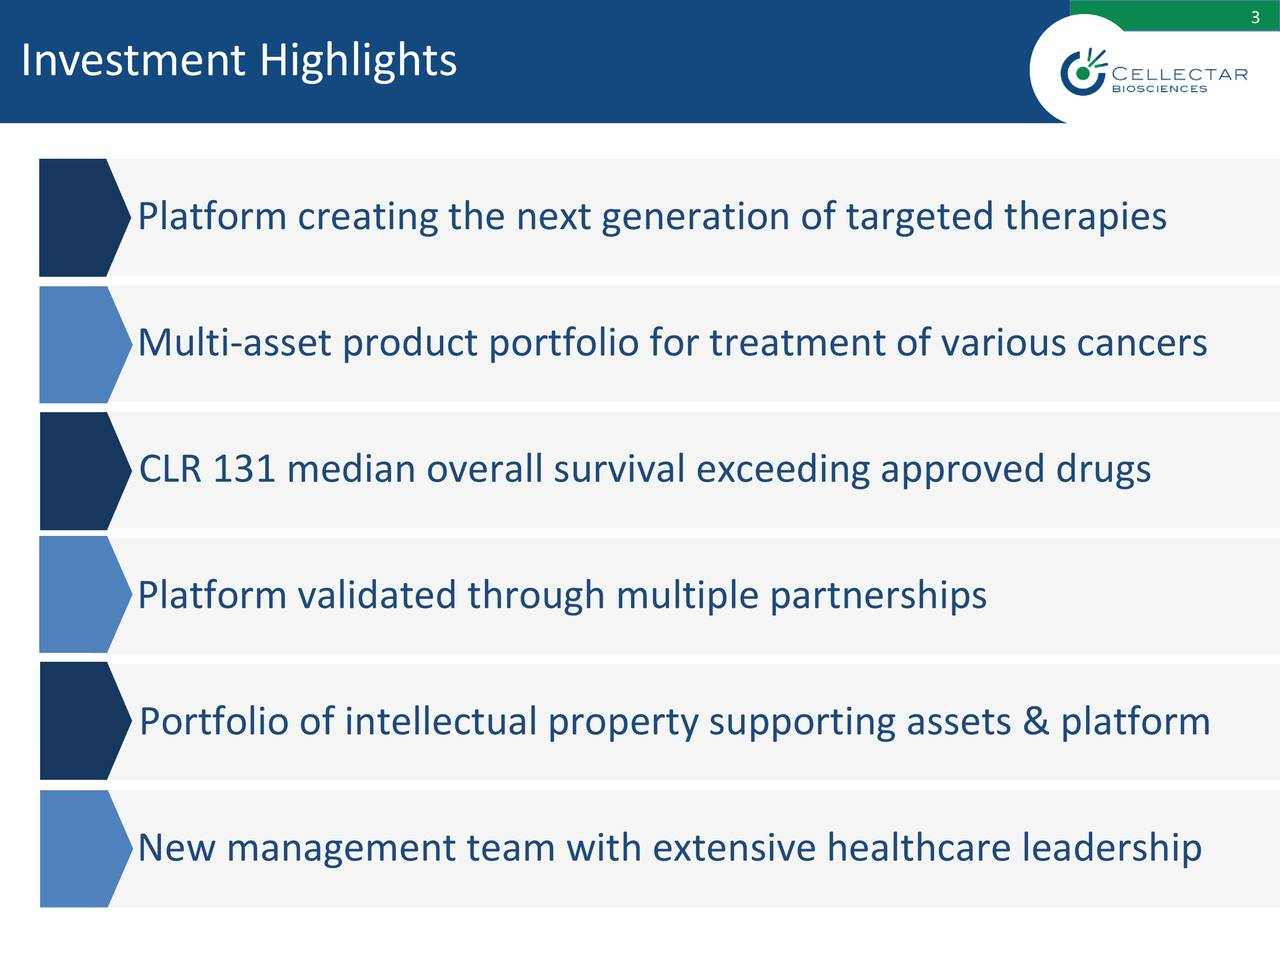 Investment Highlights Platform creating the next generation of targeted therapies Multi-asset product portfolio for treatment of various cancers CLR 131 median overall survival exceeding approved drugs Platform validated through multiple partnerships Portfolio of intellectual property supporting assets & platform New management team with extensive healthcare leadership